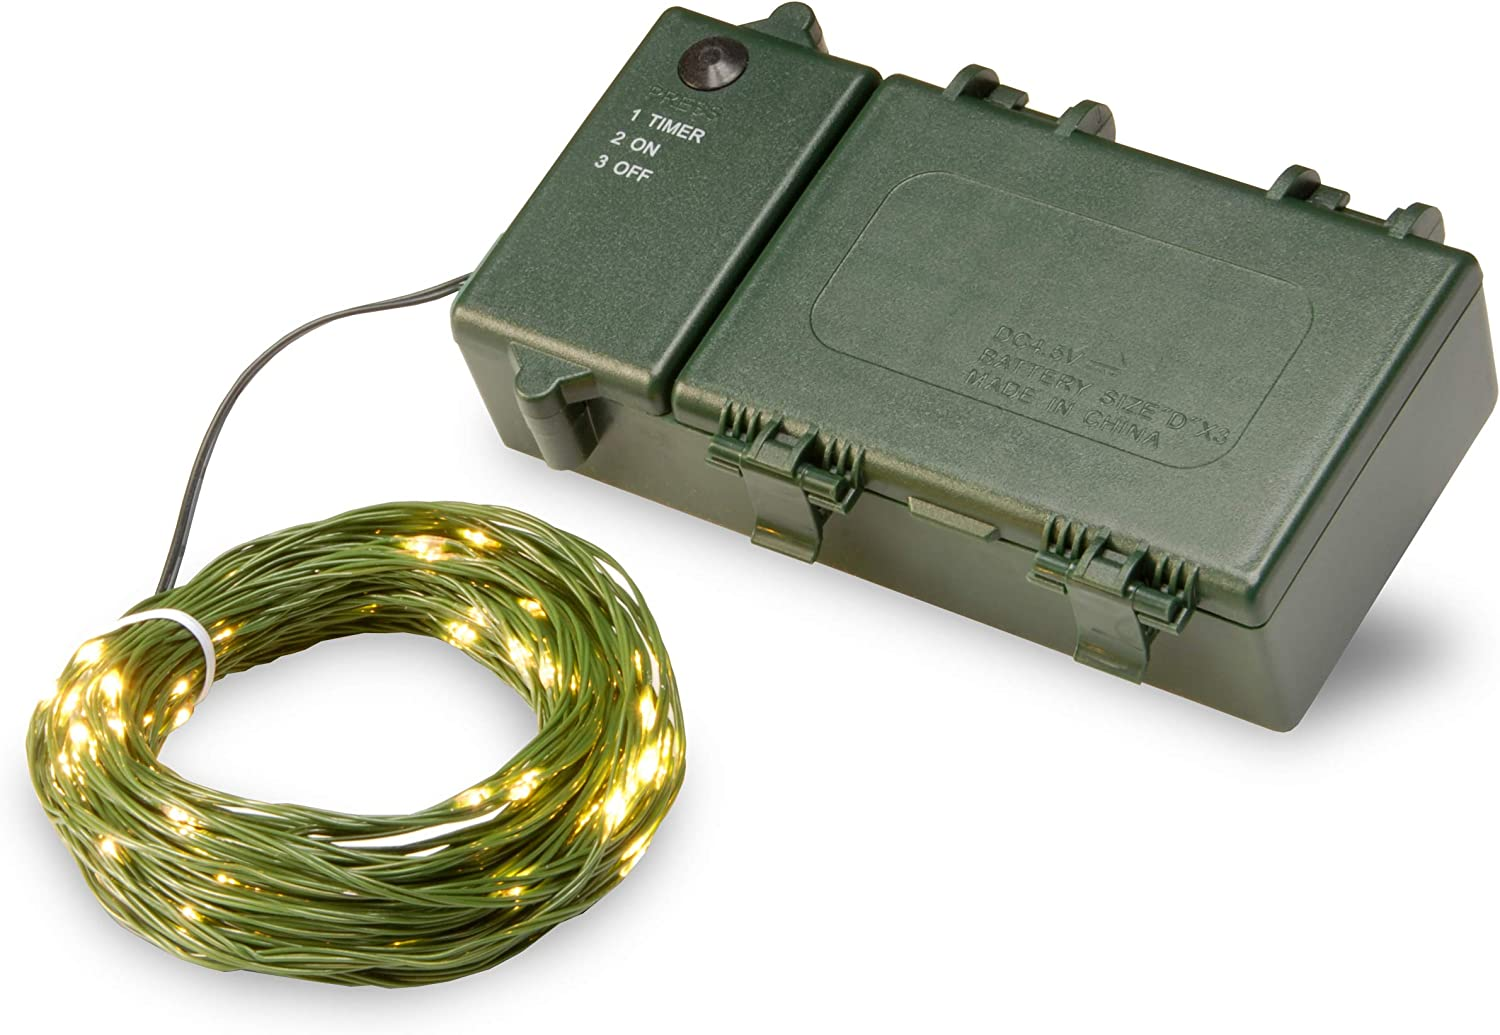 National Tree Ranking TOP10 LS-815Y-100-B Battery Warm Lights OFFicial mail order White